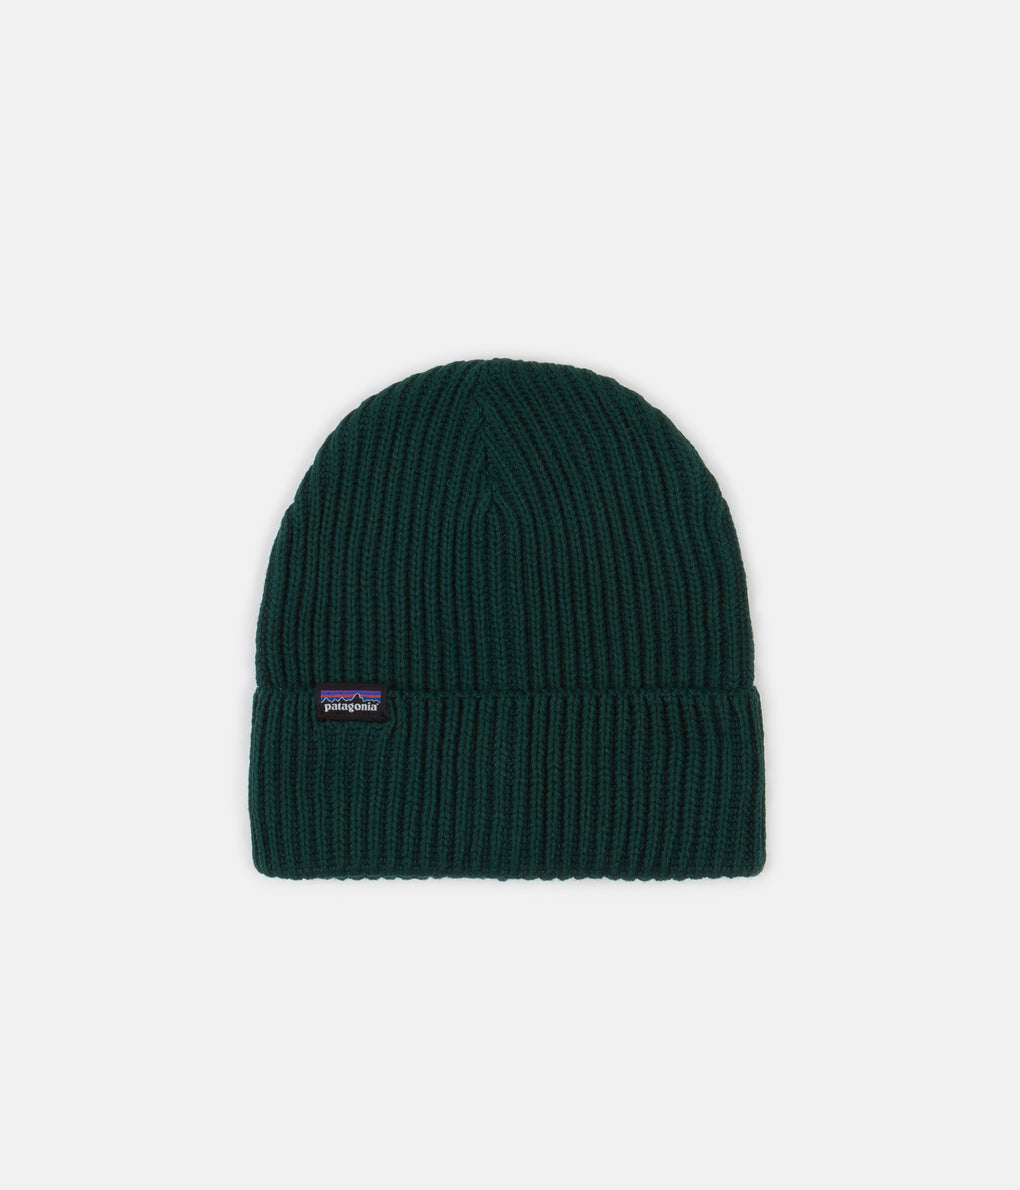 Patagonia Fisherman's Rolled Beanie - Piki Green